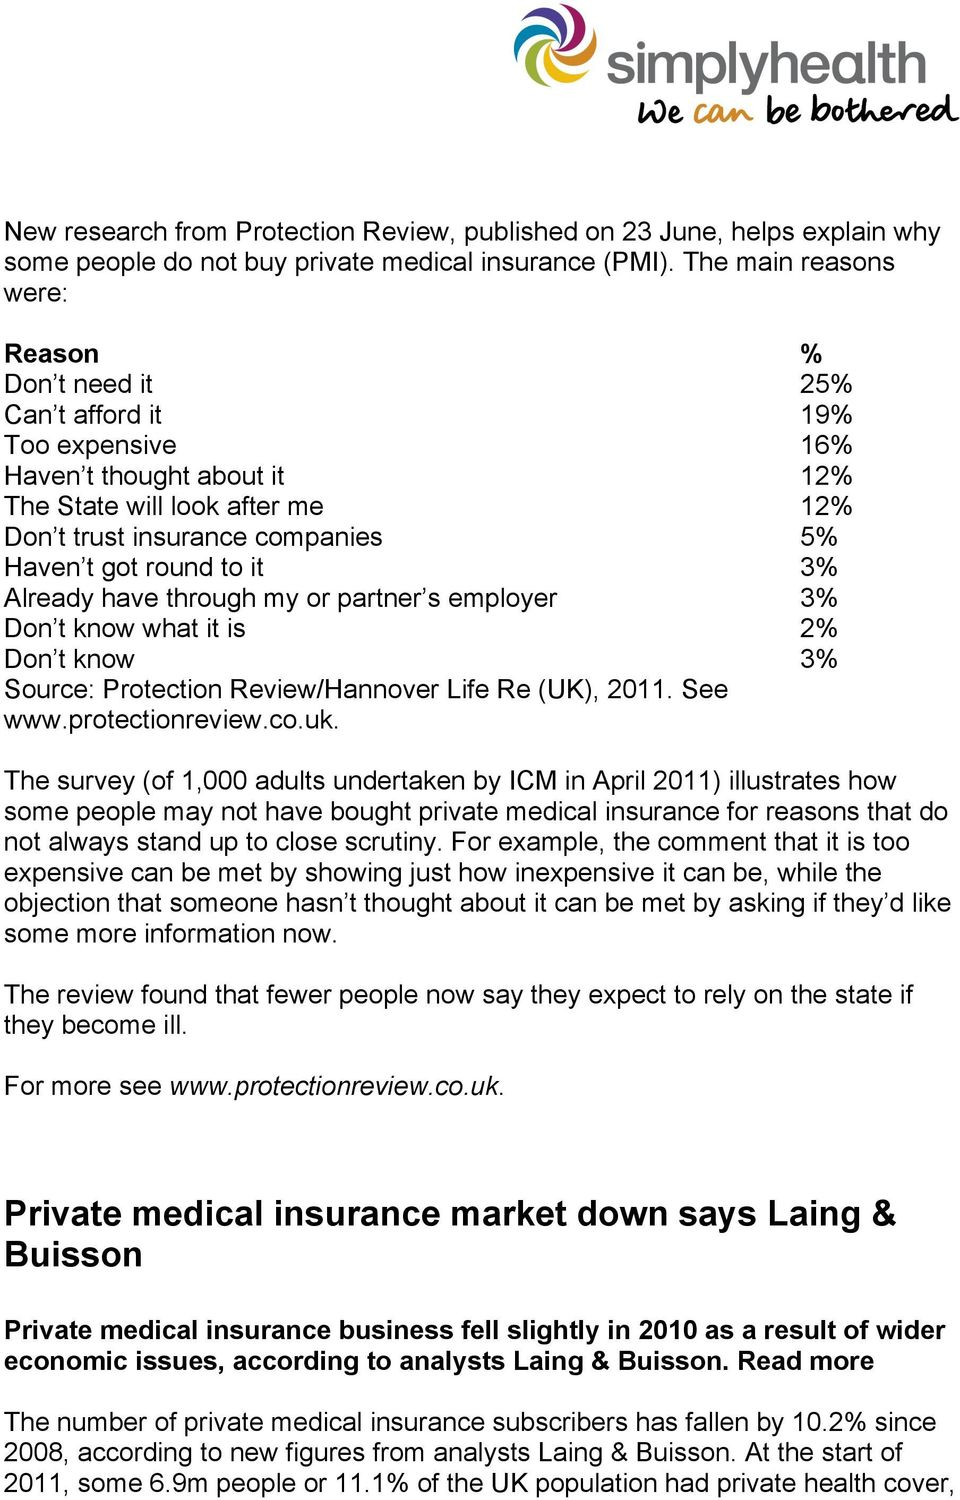 round to it 3% Already have through my or partner s employer 3% Don t know what it is 2% Don t know 3% Source: Protection Review/Hannover Life Re (UK), 2011. See www.protectionreview.co.uk.